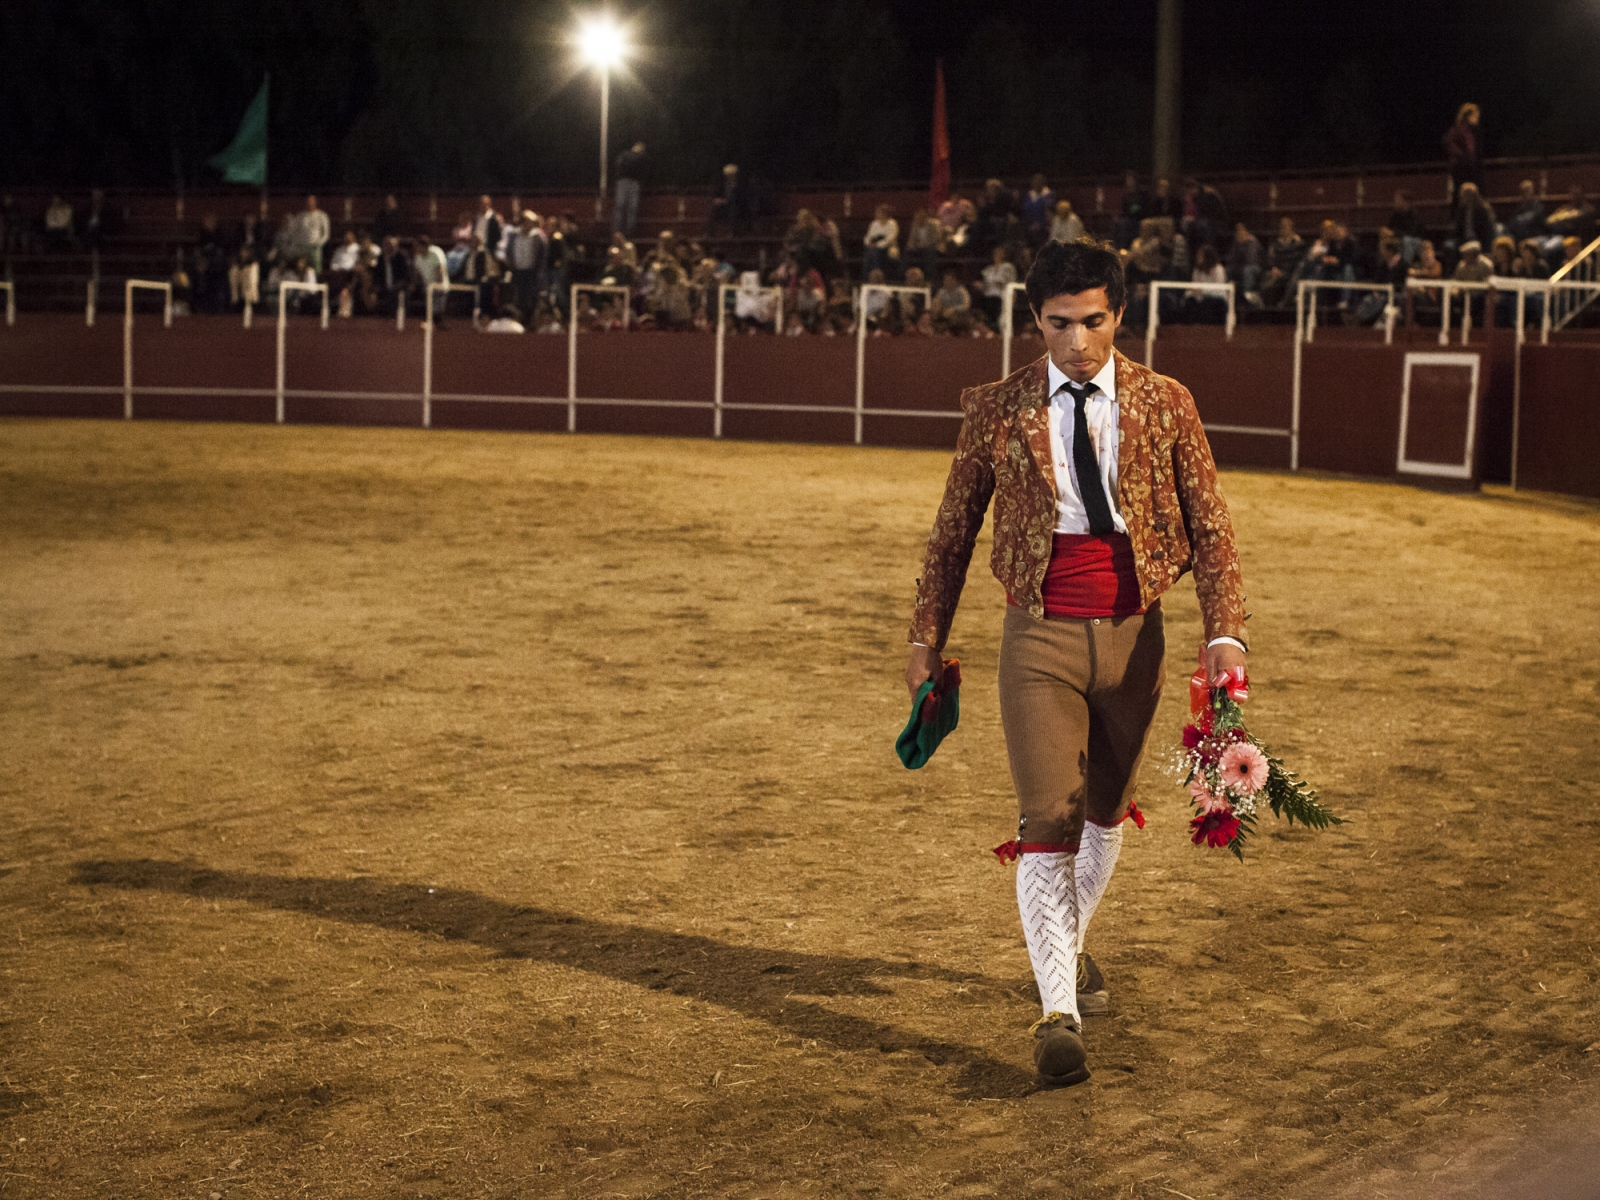 Dinis Caeiro, a member of the Forcados of Évora, leaves the arena after a successful face catch. When the pega is done at the first attempt and with style, the forcado goes around the arena to receive applauses and flowers from the public.